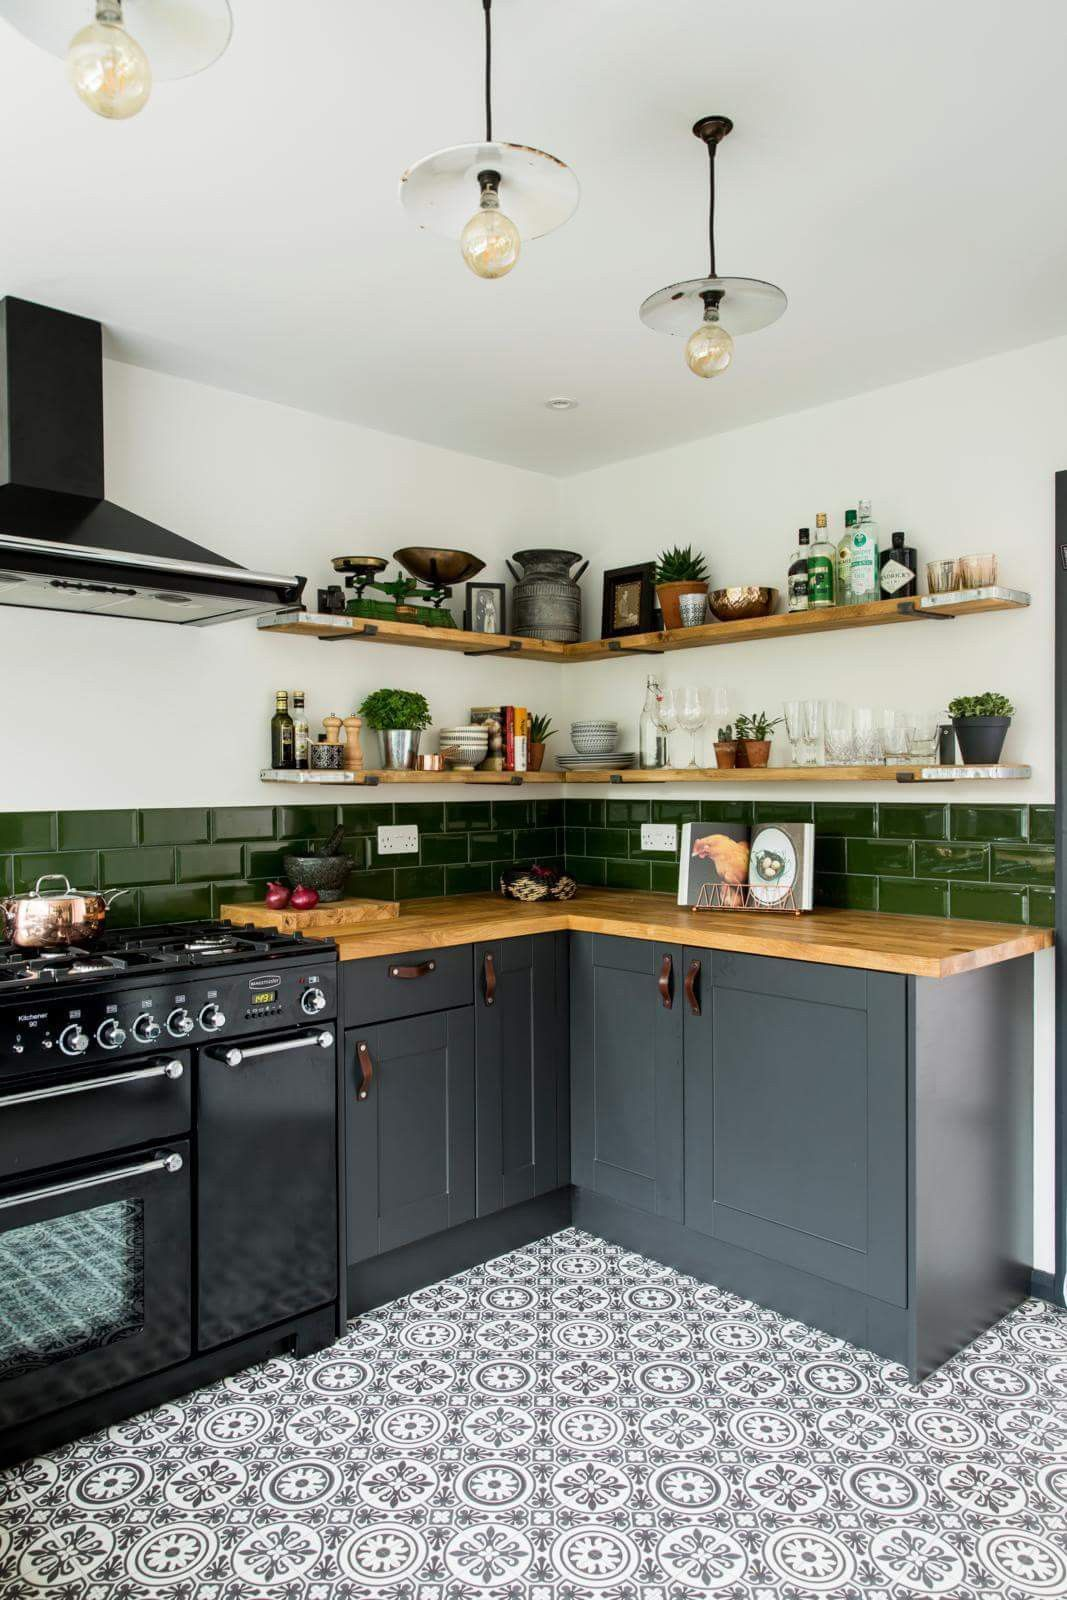 Pin by Kimberley Wade on Tiny House Home kitchens